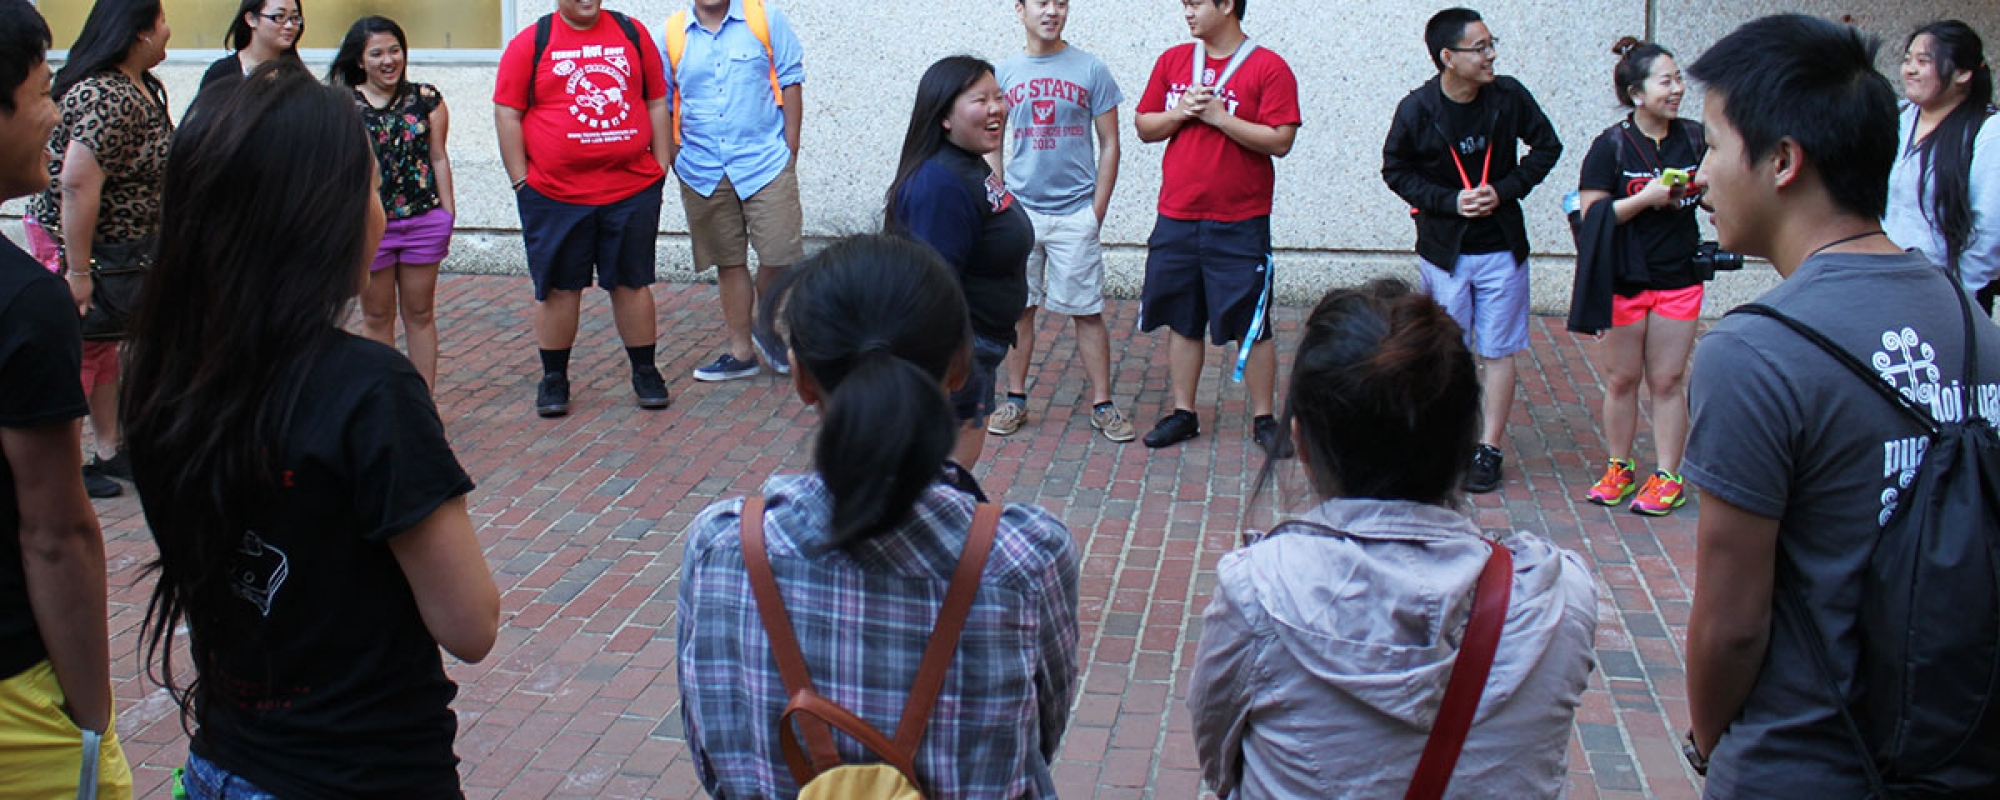 Games during Introduction - Tour 2014